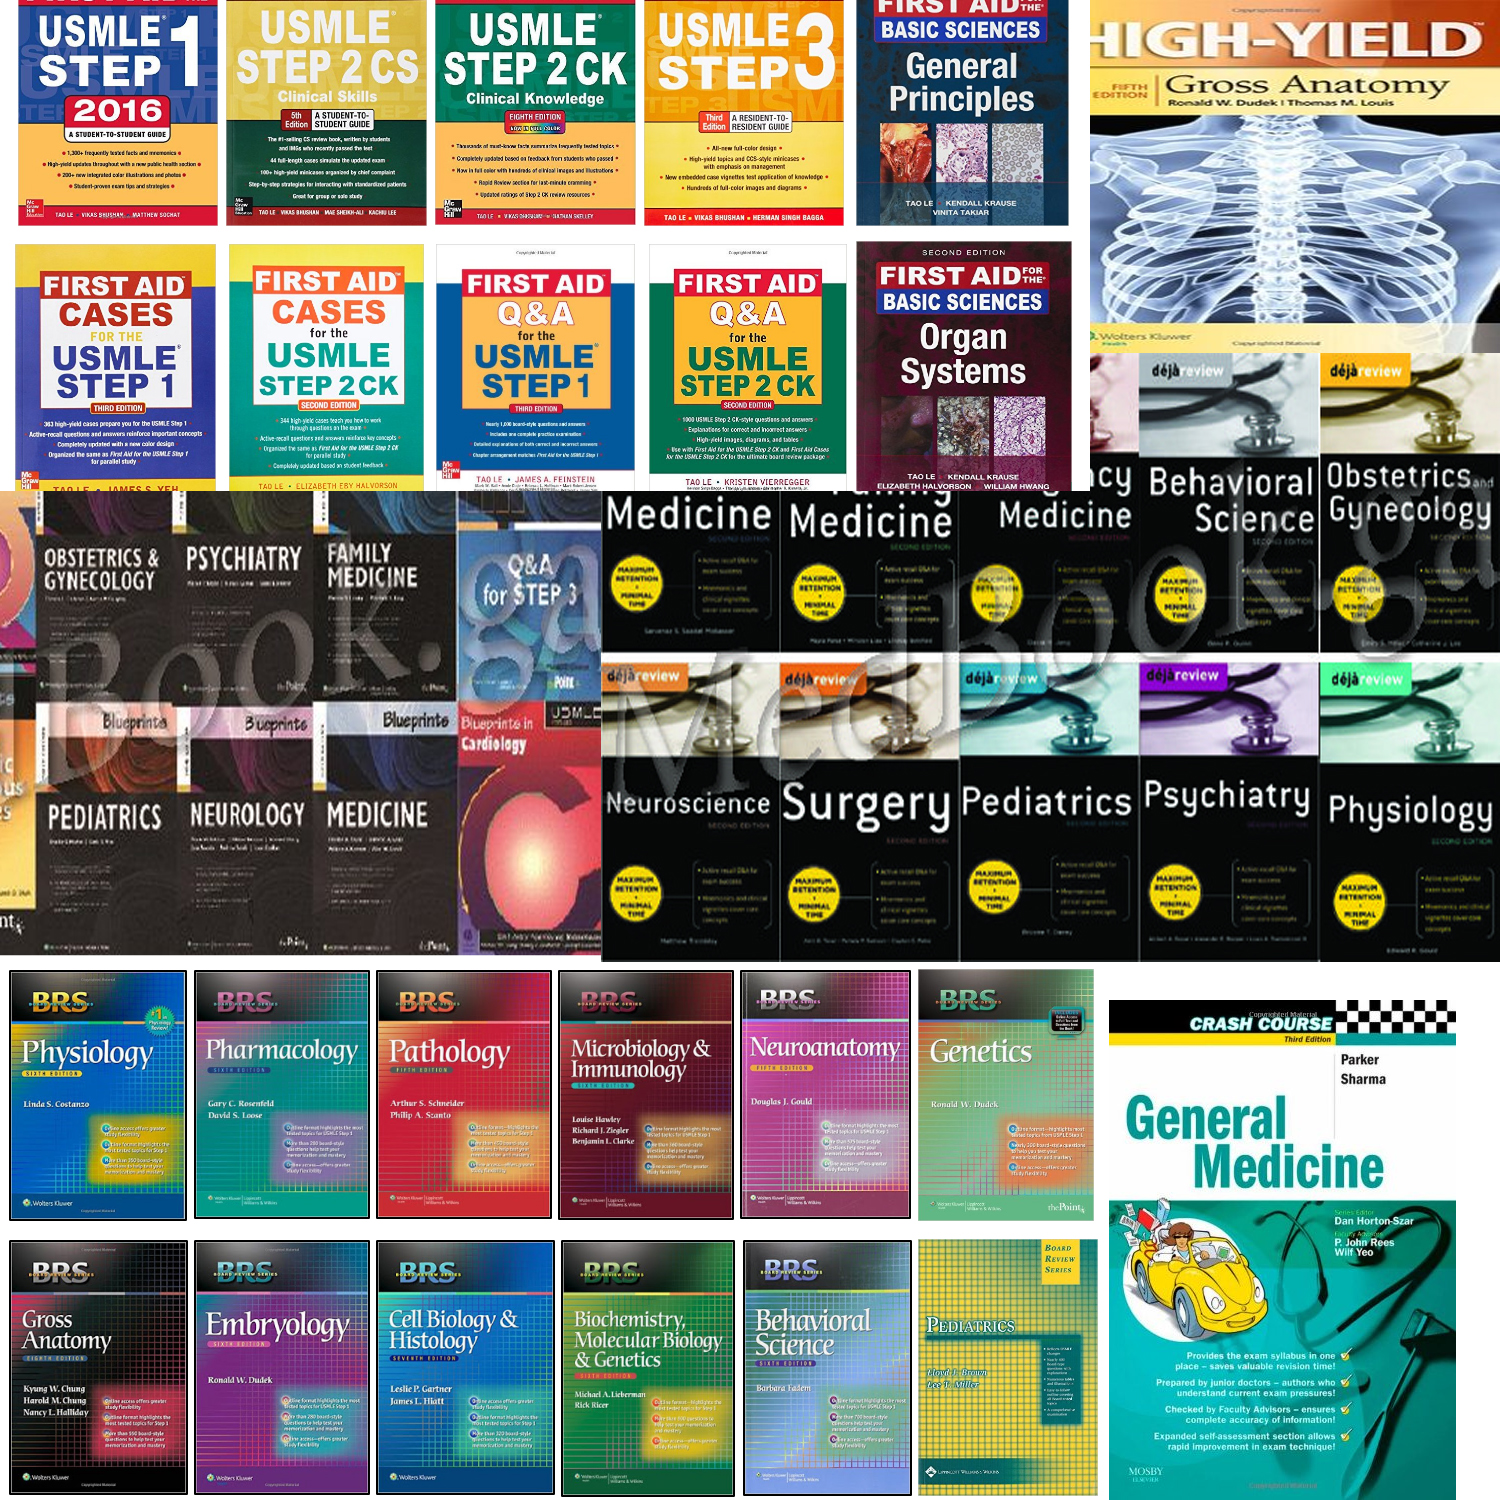 Descargar Libros Completos De Google Books Descargar Libros De Medicina Gratis More Than 100 Books